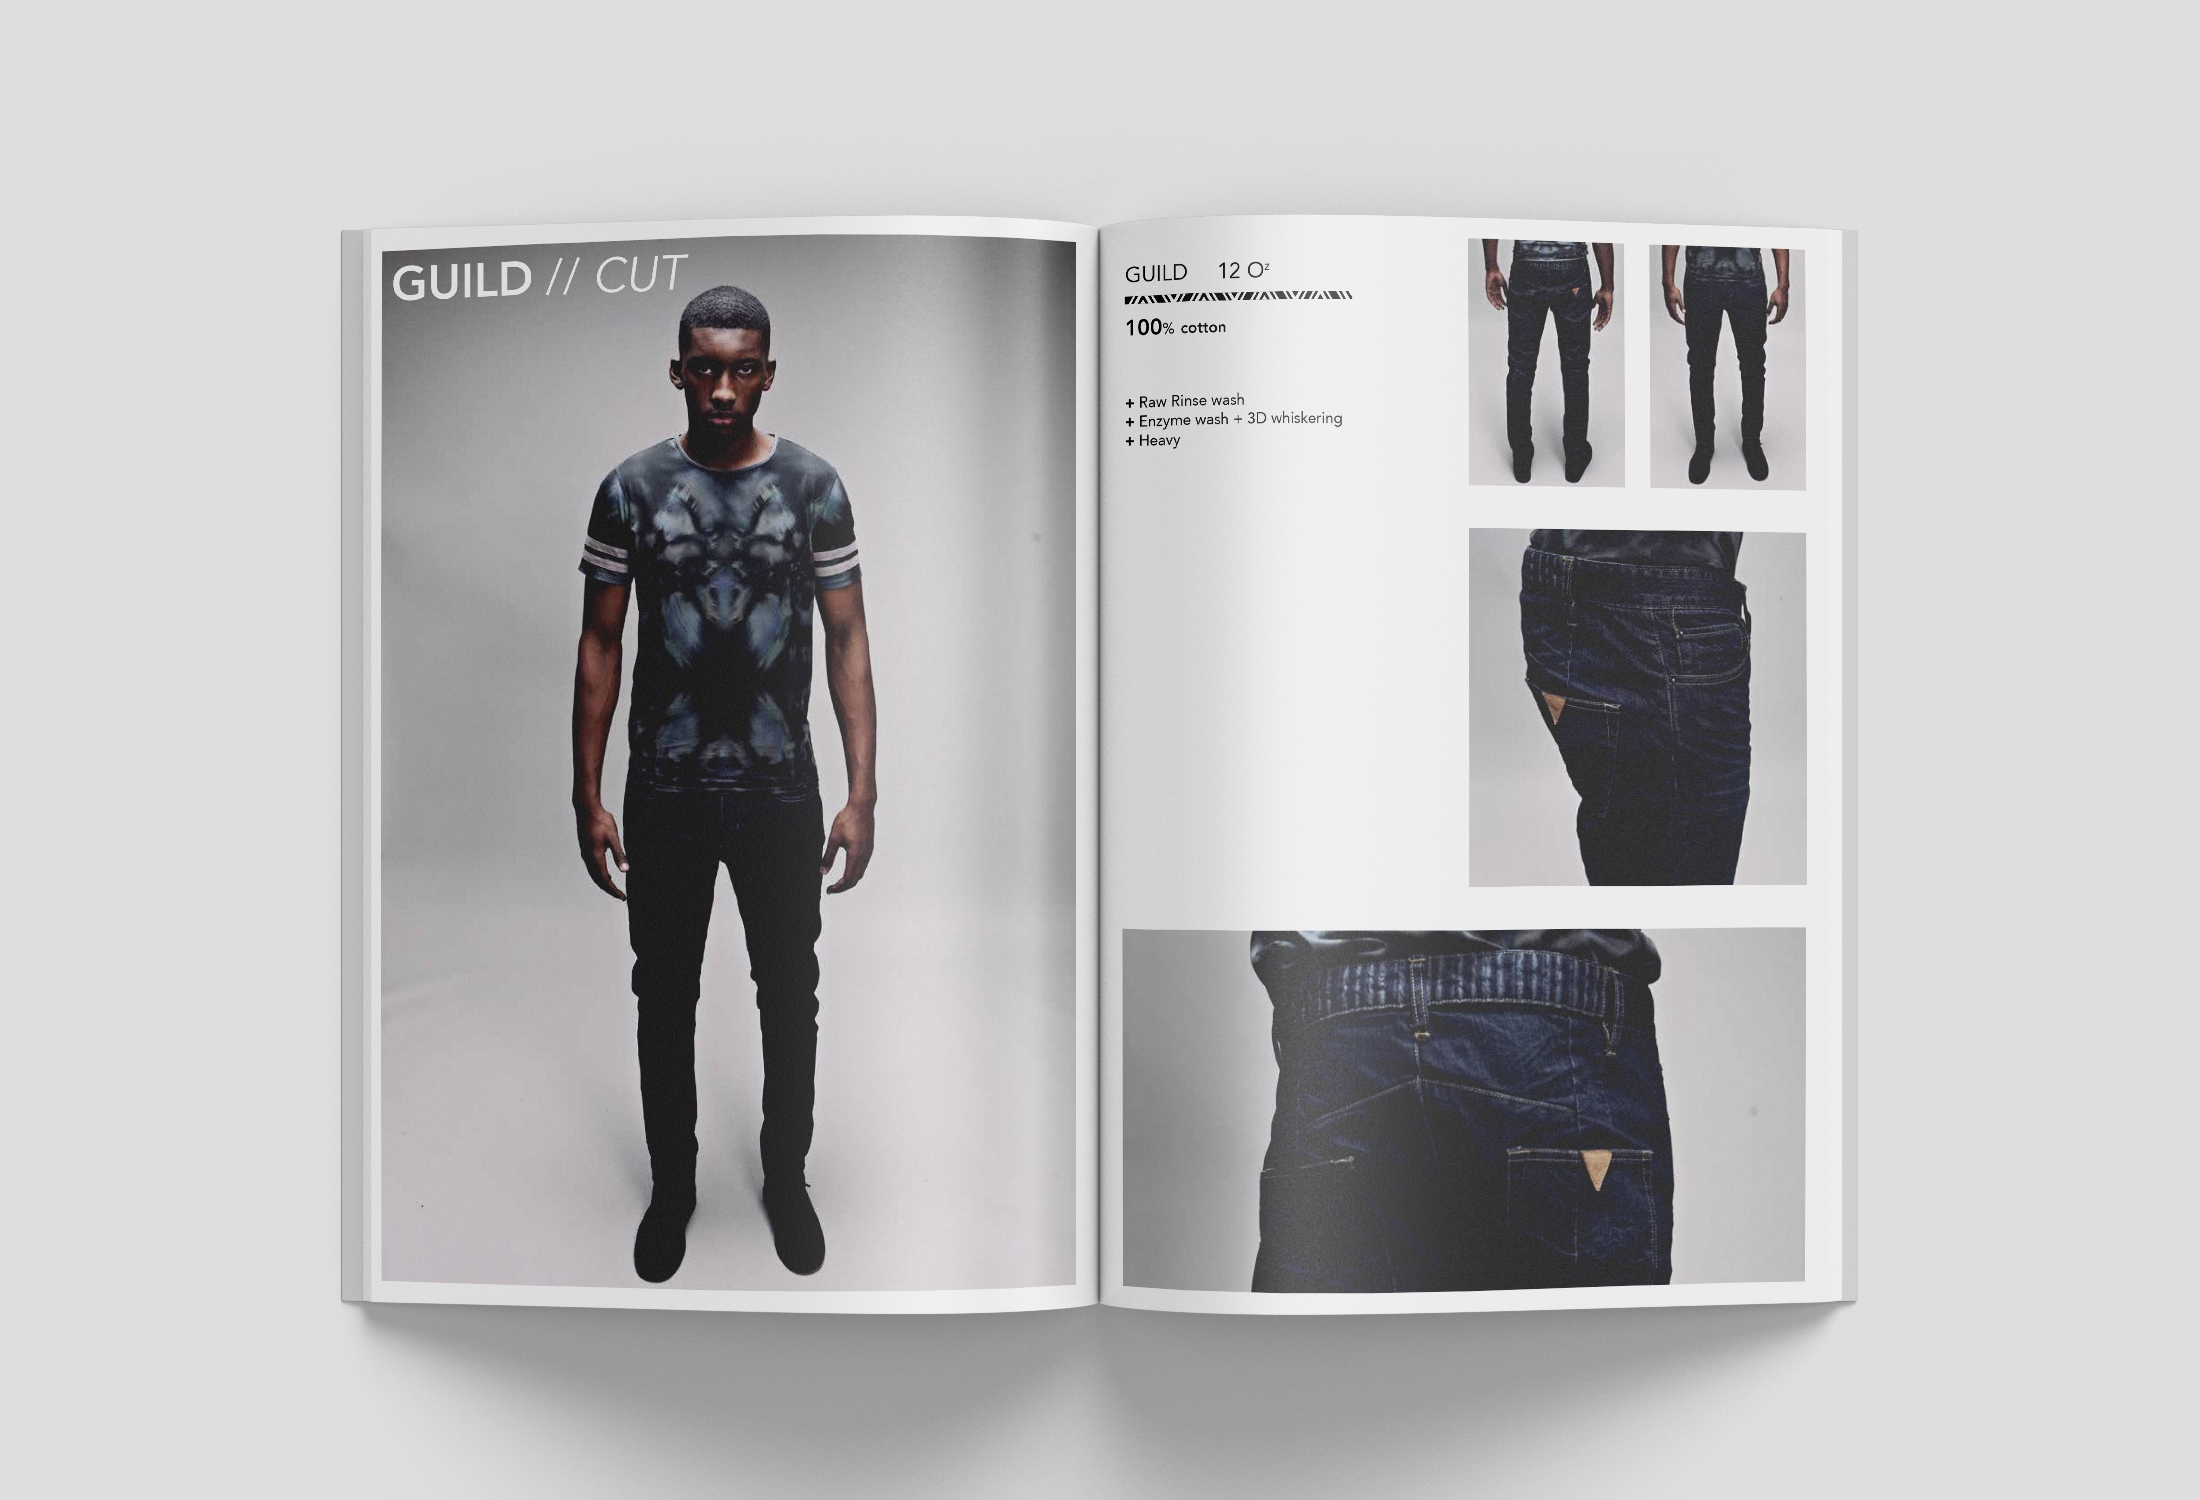 Volklore menswear clothing brand